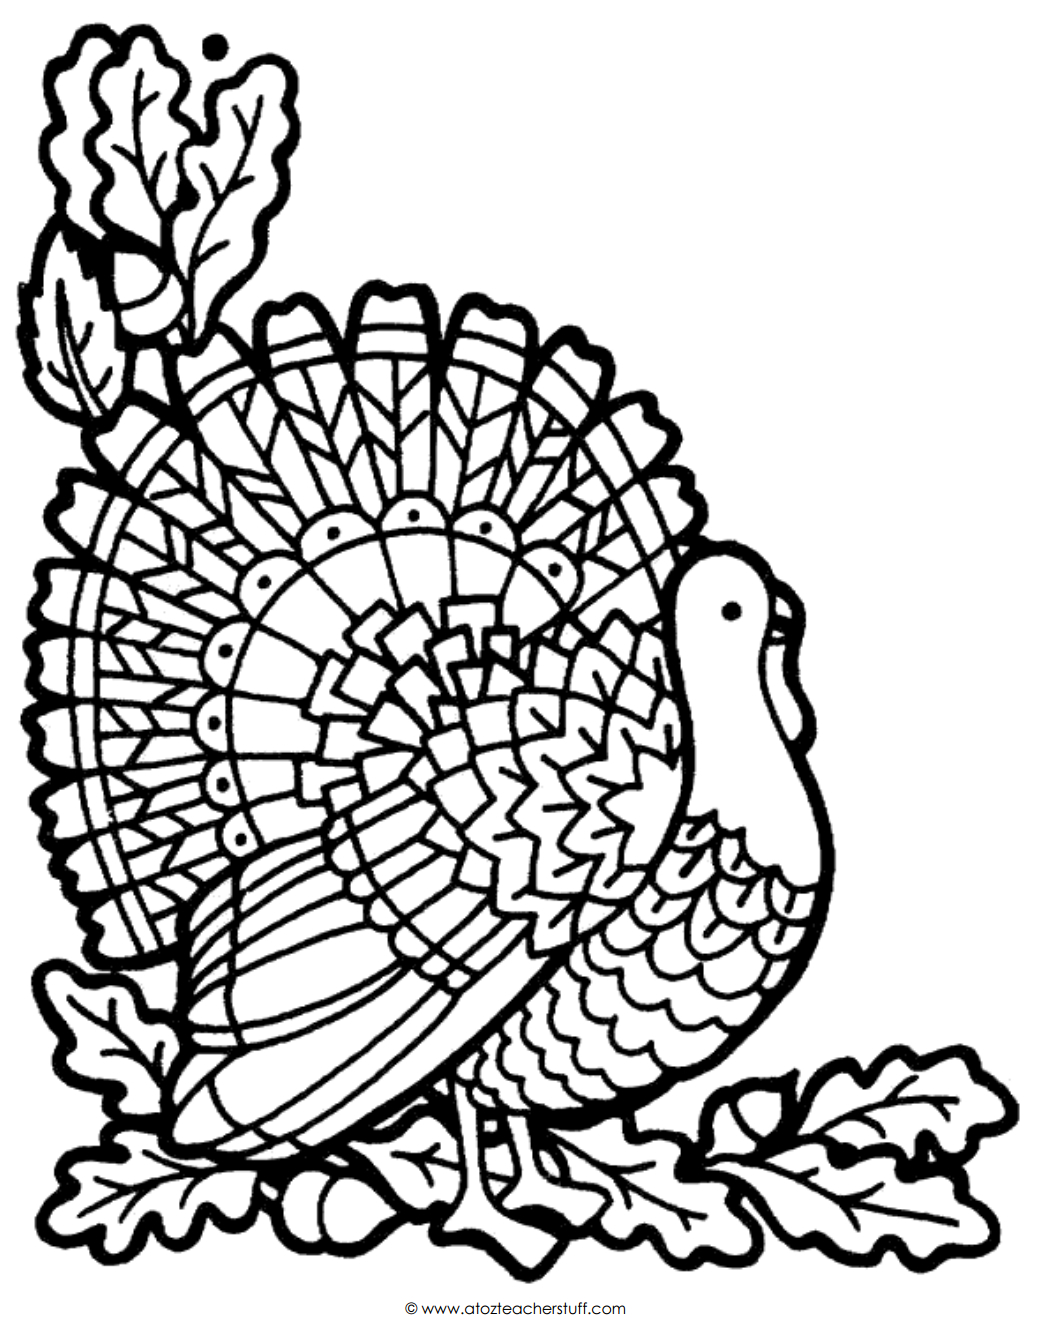 Thanksgiving Day Coloring Pages Free Coloring Pages Thanksgiving Turkeyoloring Pictures Sheets For Kids